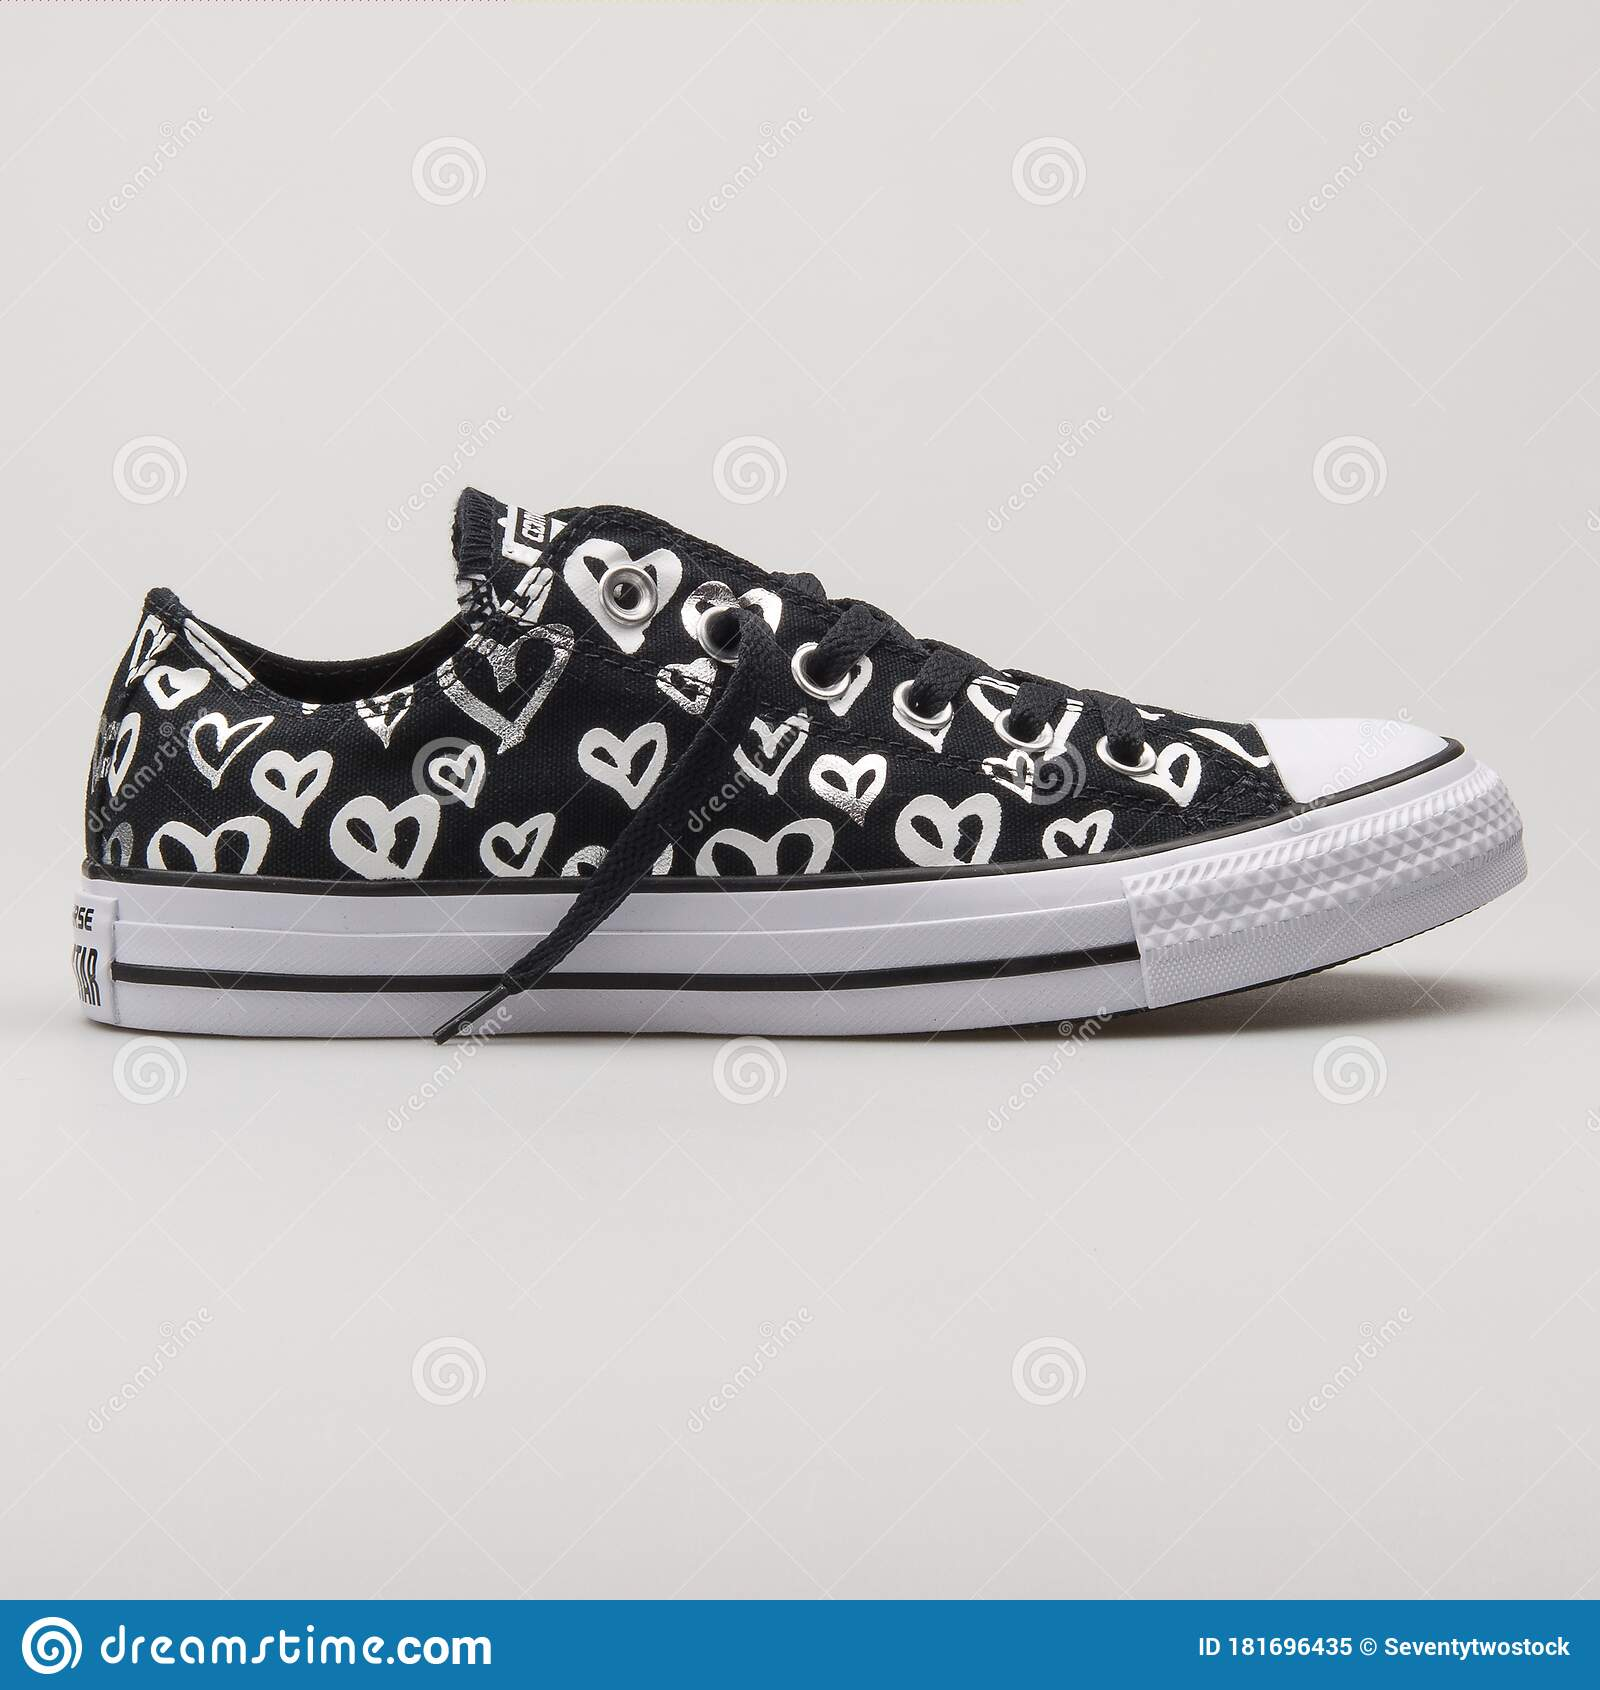 Converse Chuck Taylor All Star OX Black, Silver And White Sneaker ...